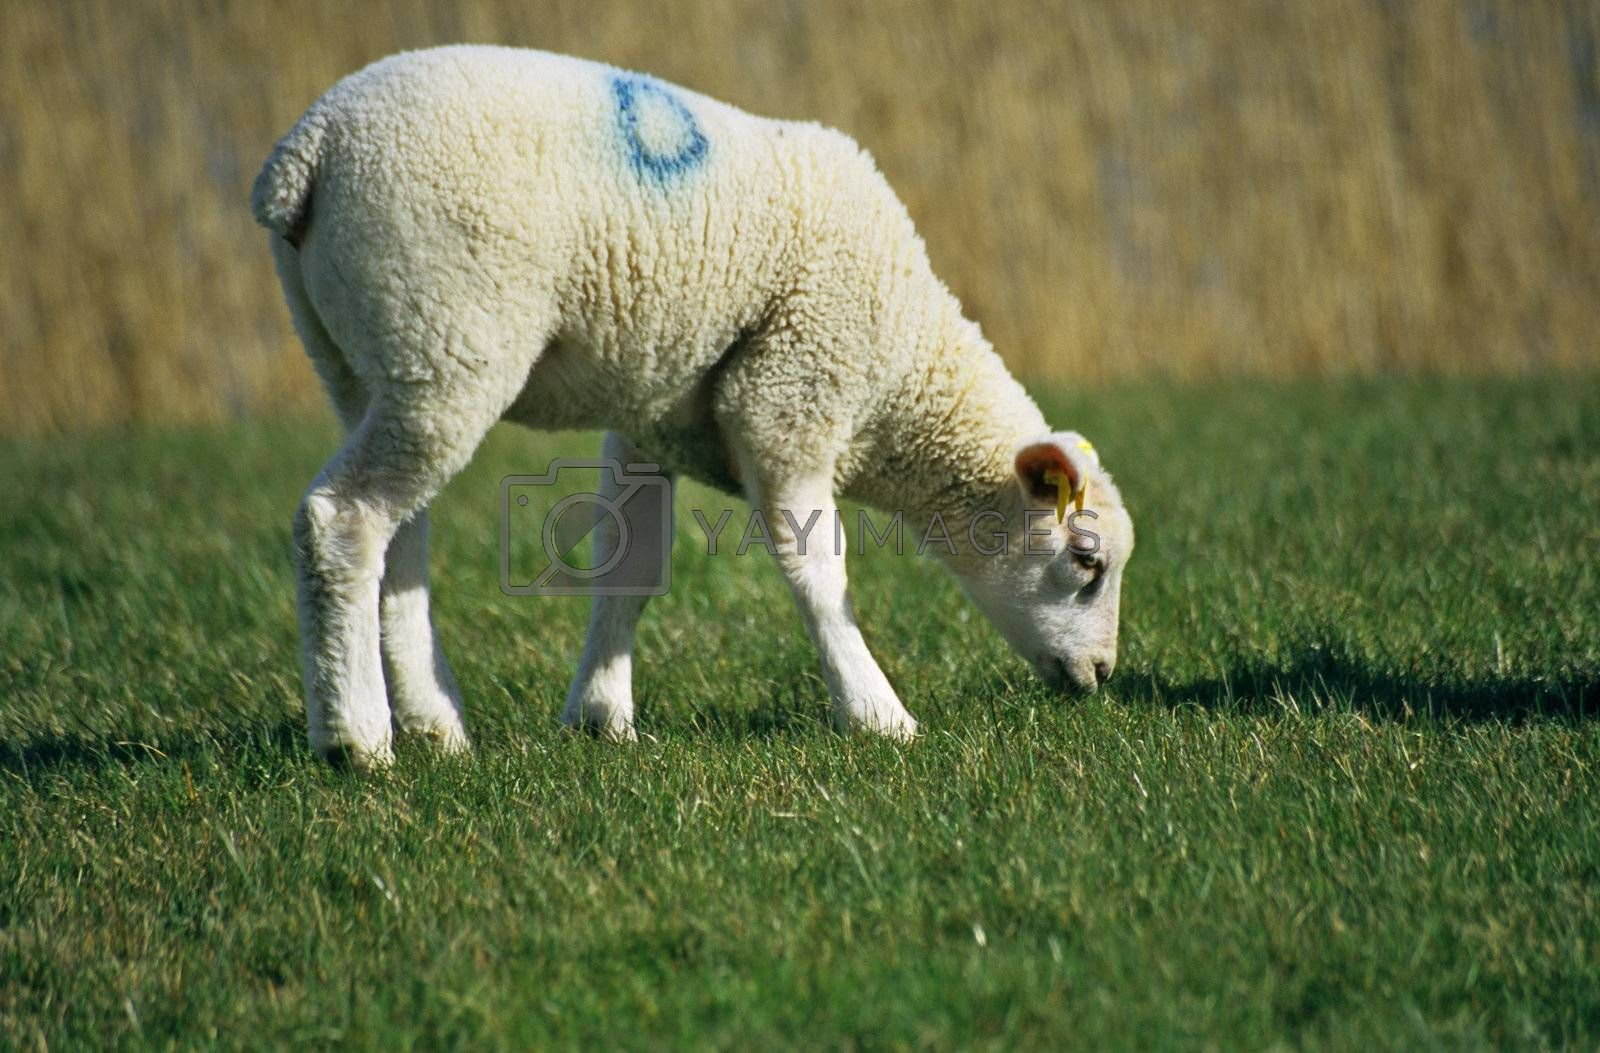 A young spring lamb munches on green grass in the Netherlands.